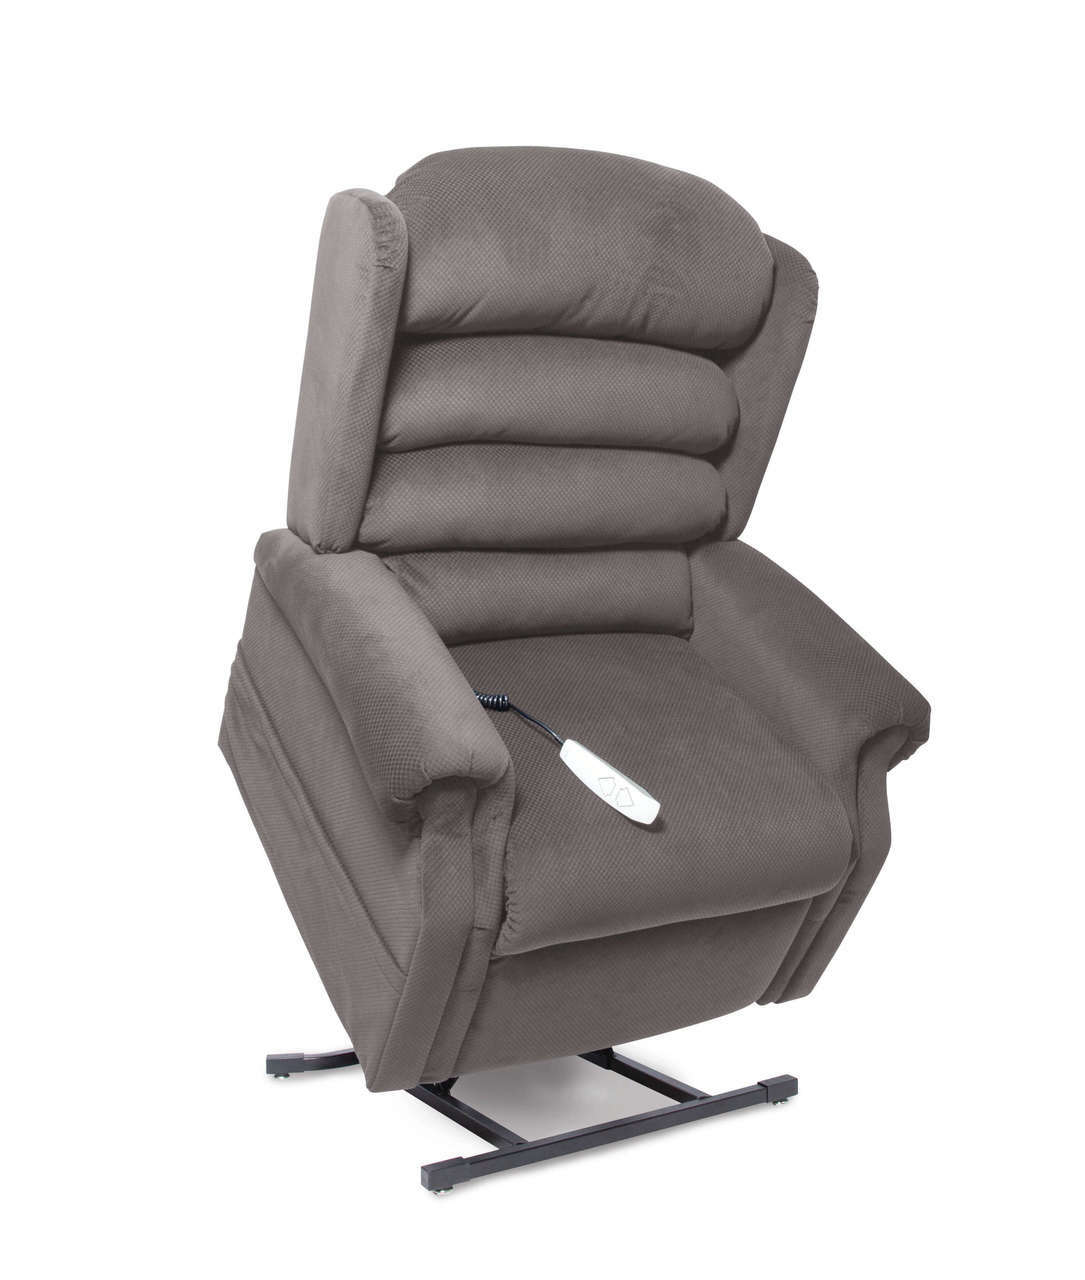 Astonishing Nm 435Lt Large Tall Home Decor 3 Position Power Lift Recliner By Pride Gmtry Best Dining Table And Chair Ideas Images Gmtryco